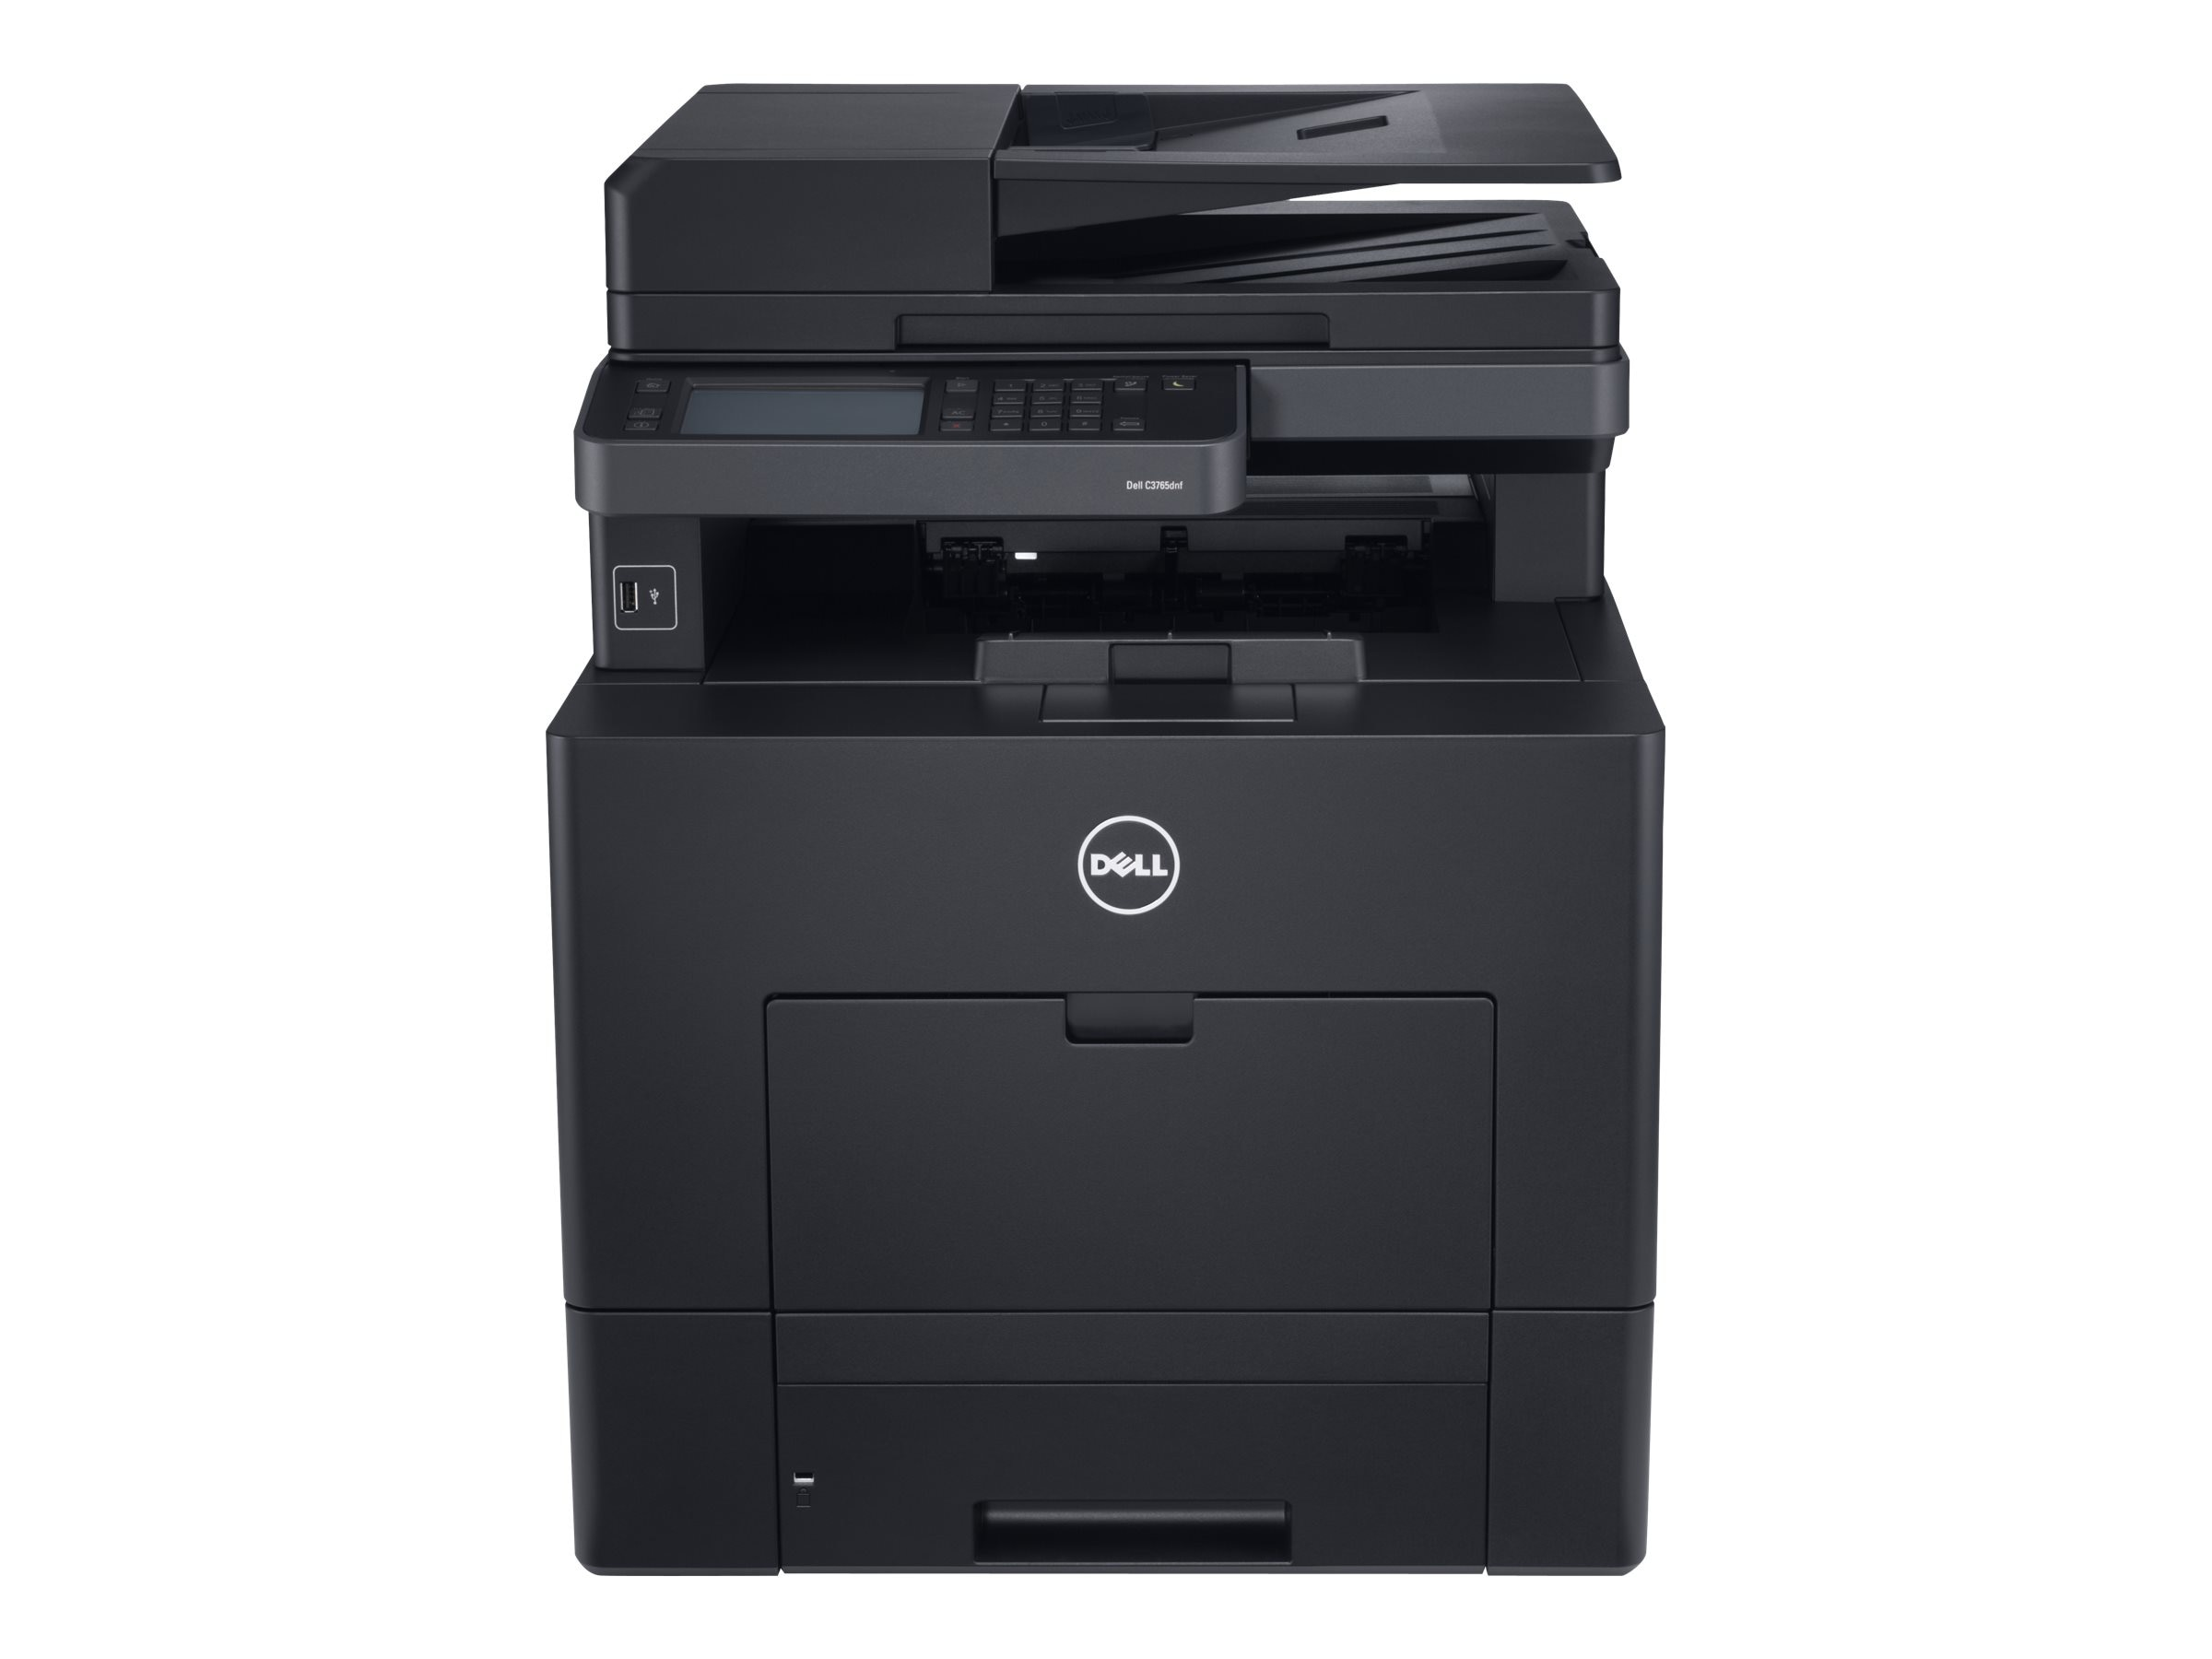 Dell C3765dnf Multifunction Color Laser Printer